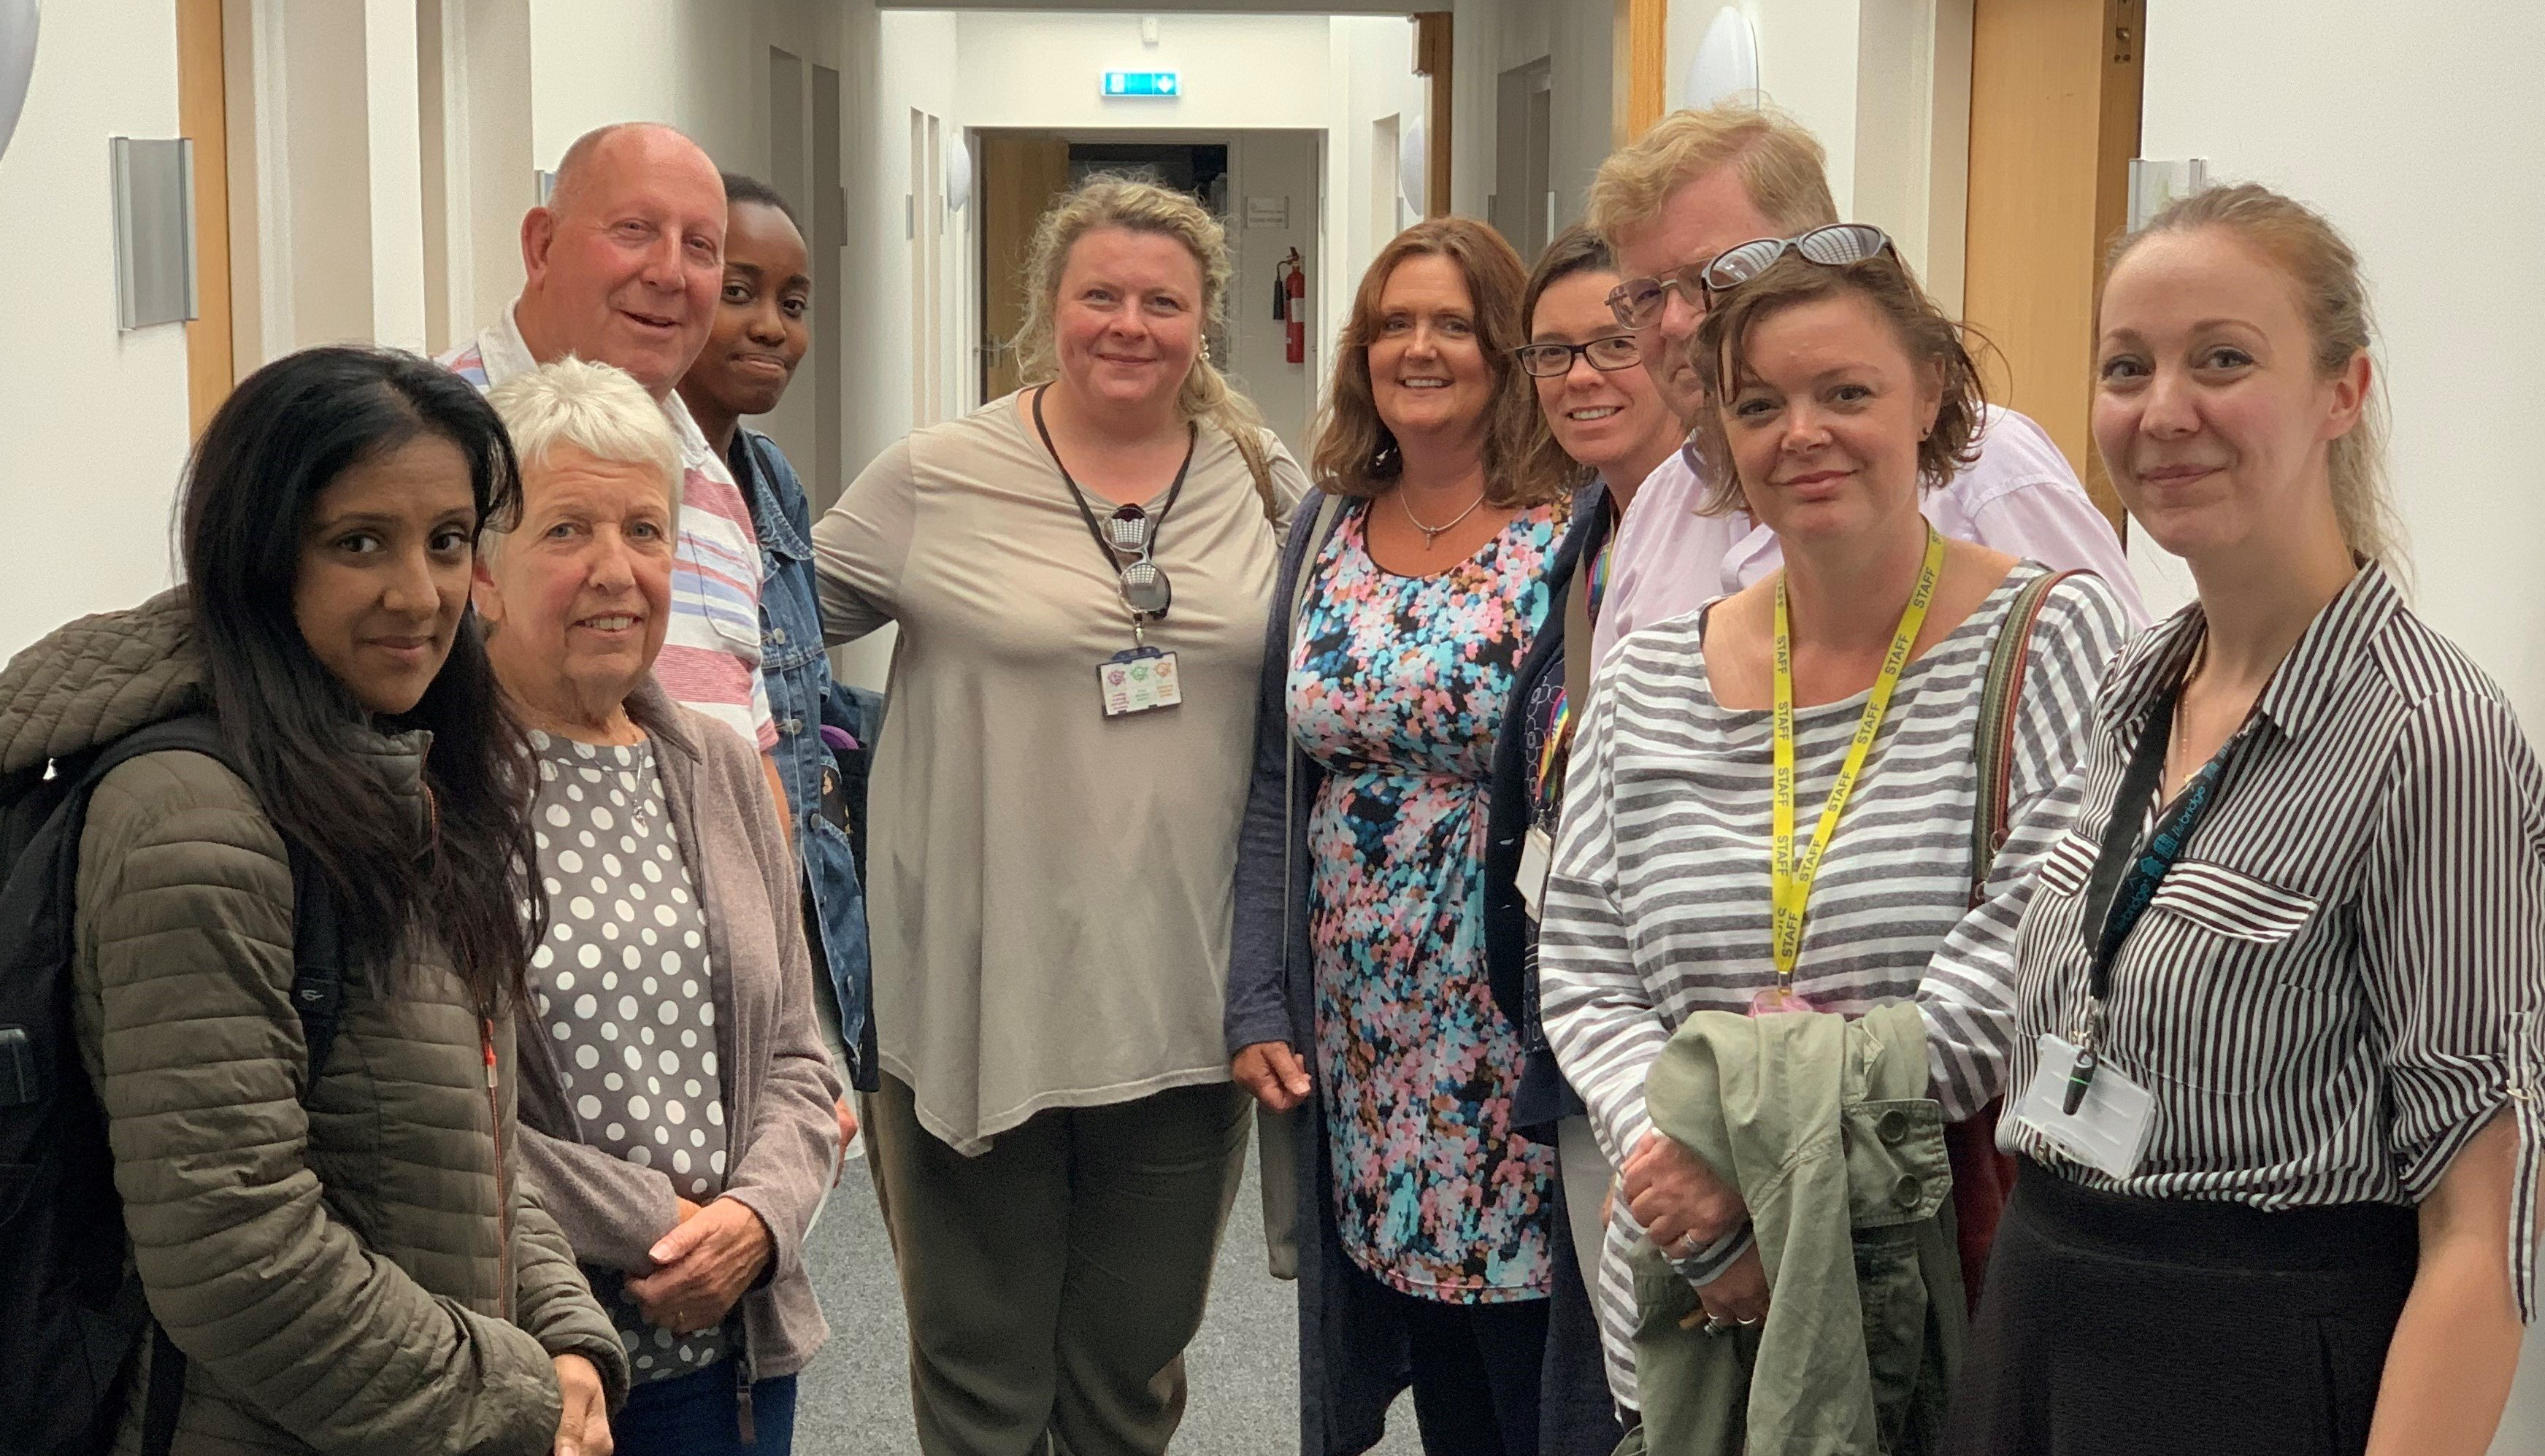 Charnwood Food Poverty Initiative Helps Hundreds of Families